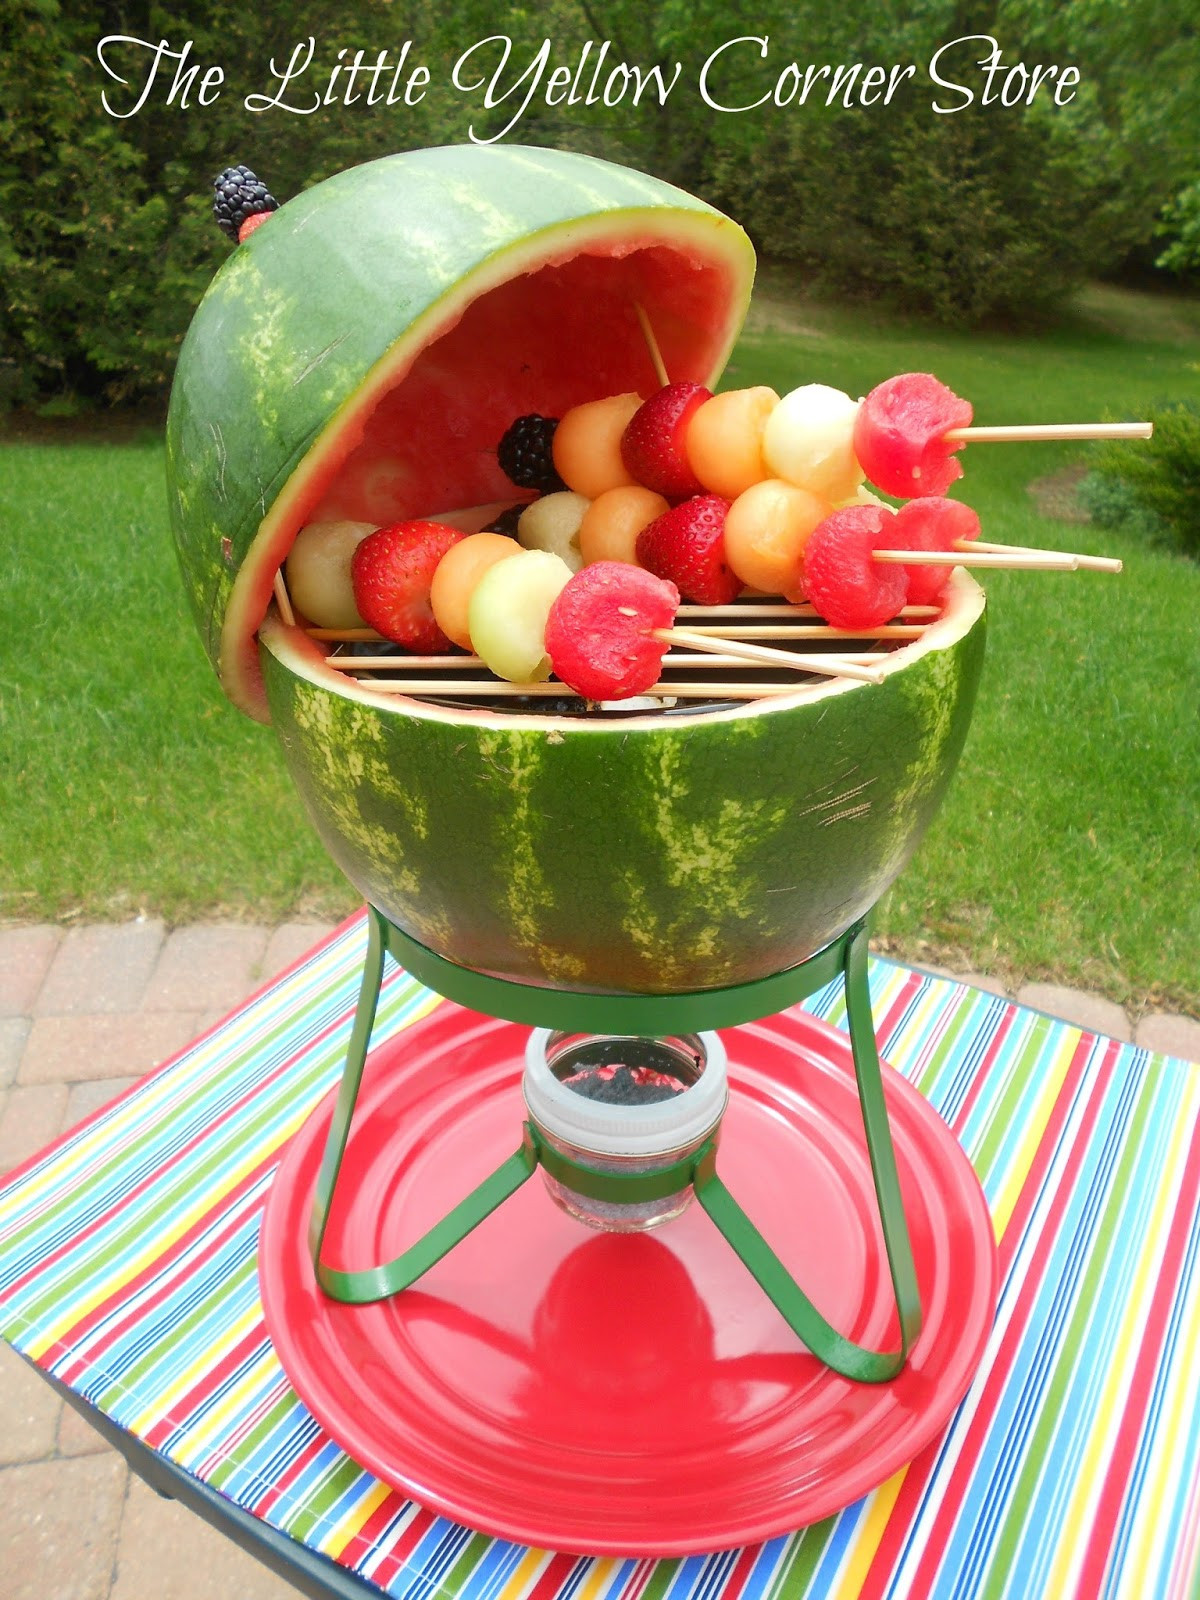 Picnic Desserts For Hot Weather  The Little Yellow Corner Store Backyards BBQs and Picnics